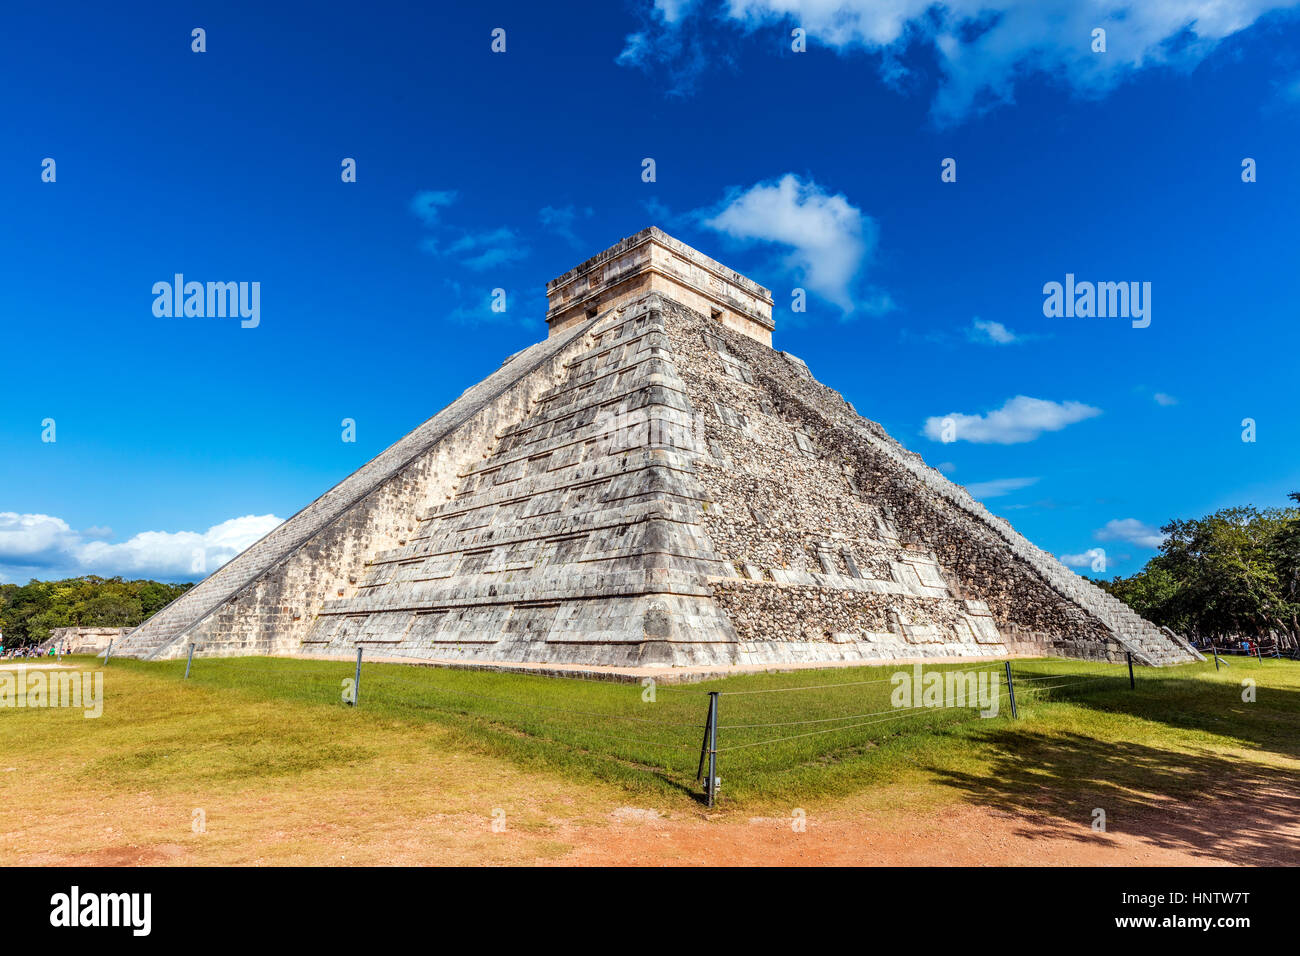 Stock Photo - Tempio di Kukulcan a Chichen Itza, Messico Immagini Stock